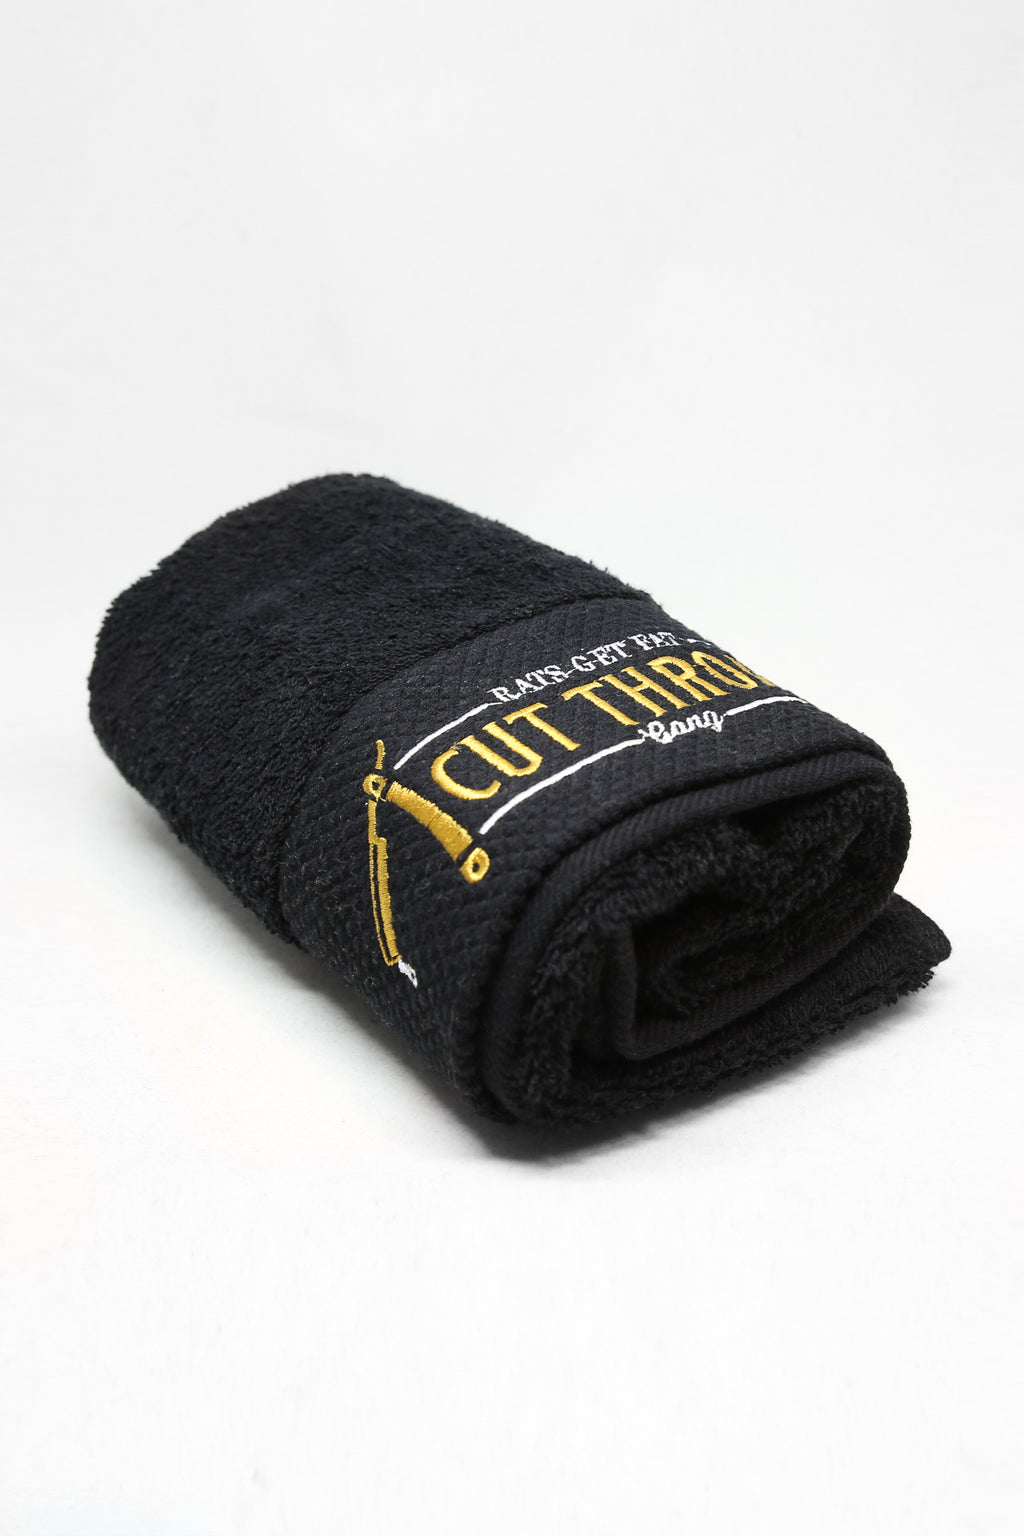 LUXURY TOWEL - Black